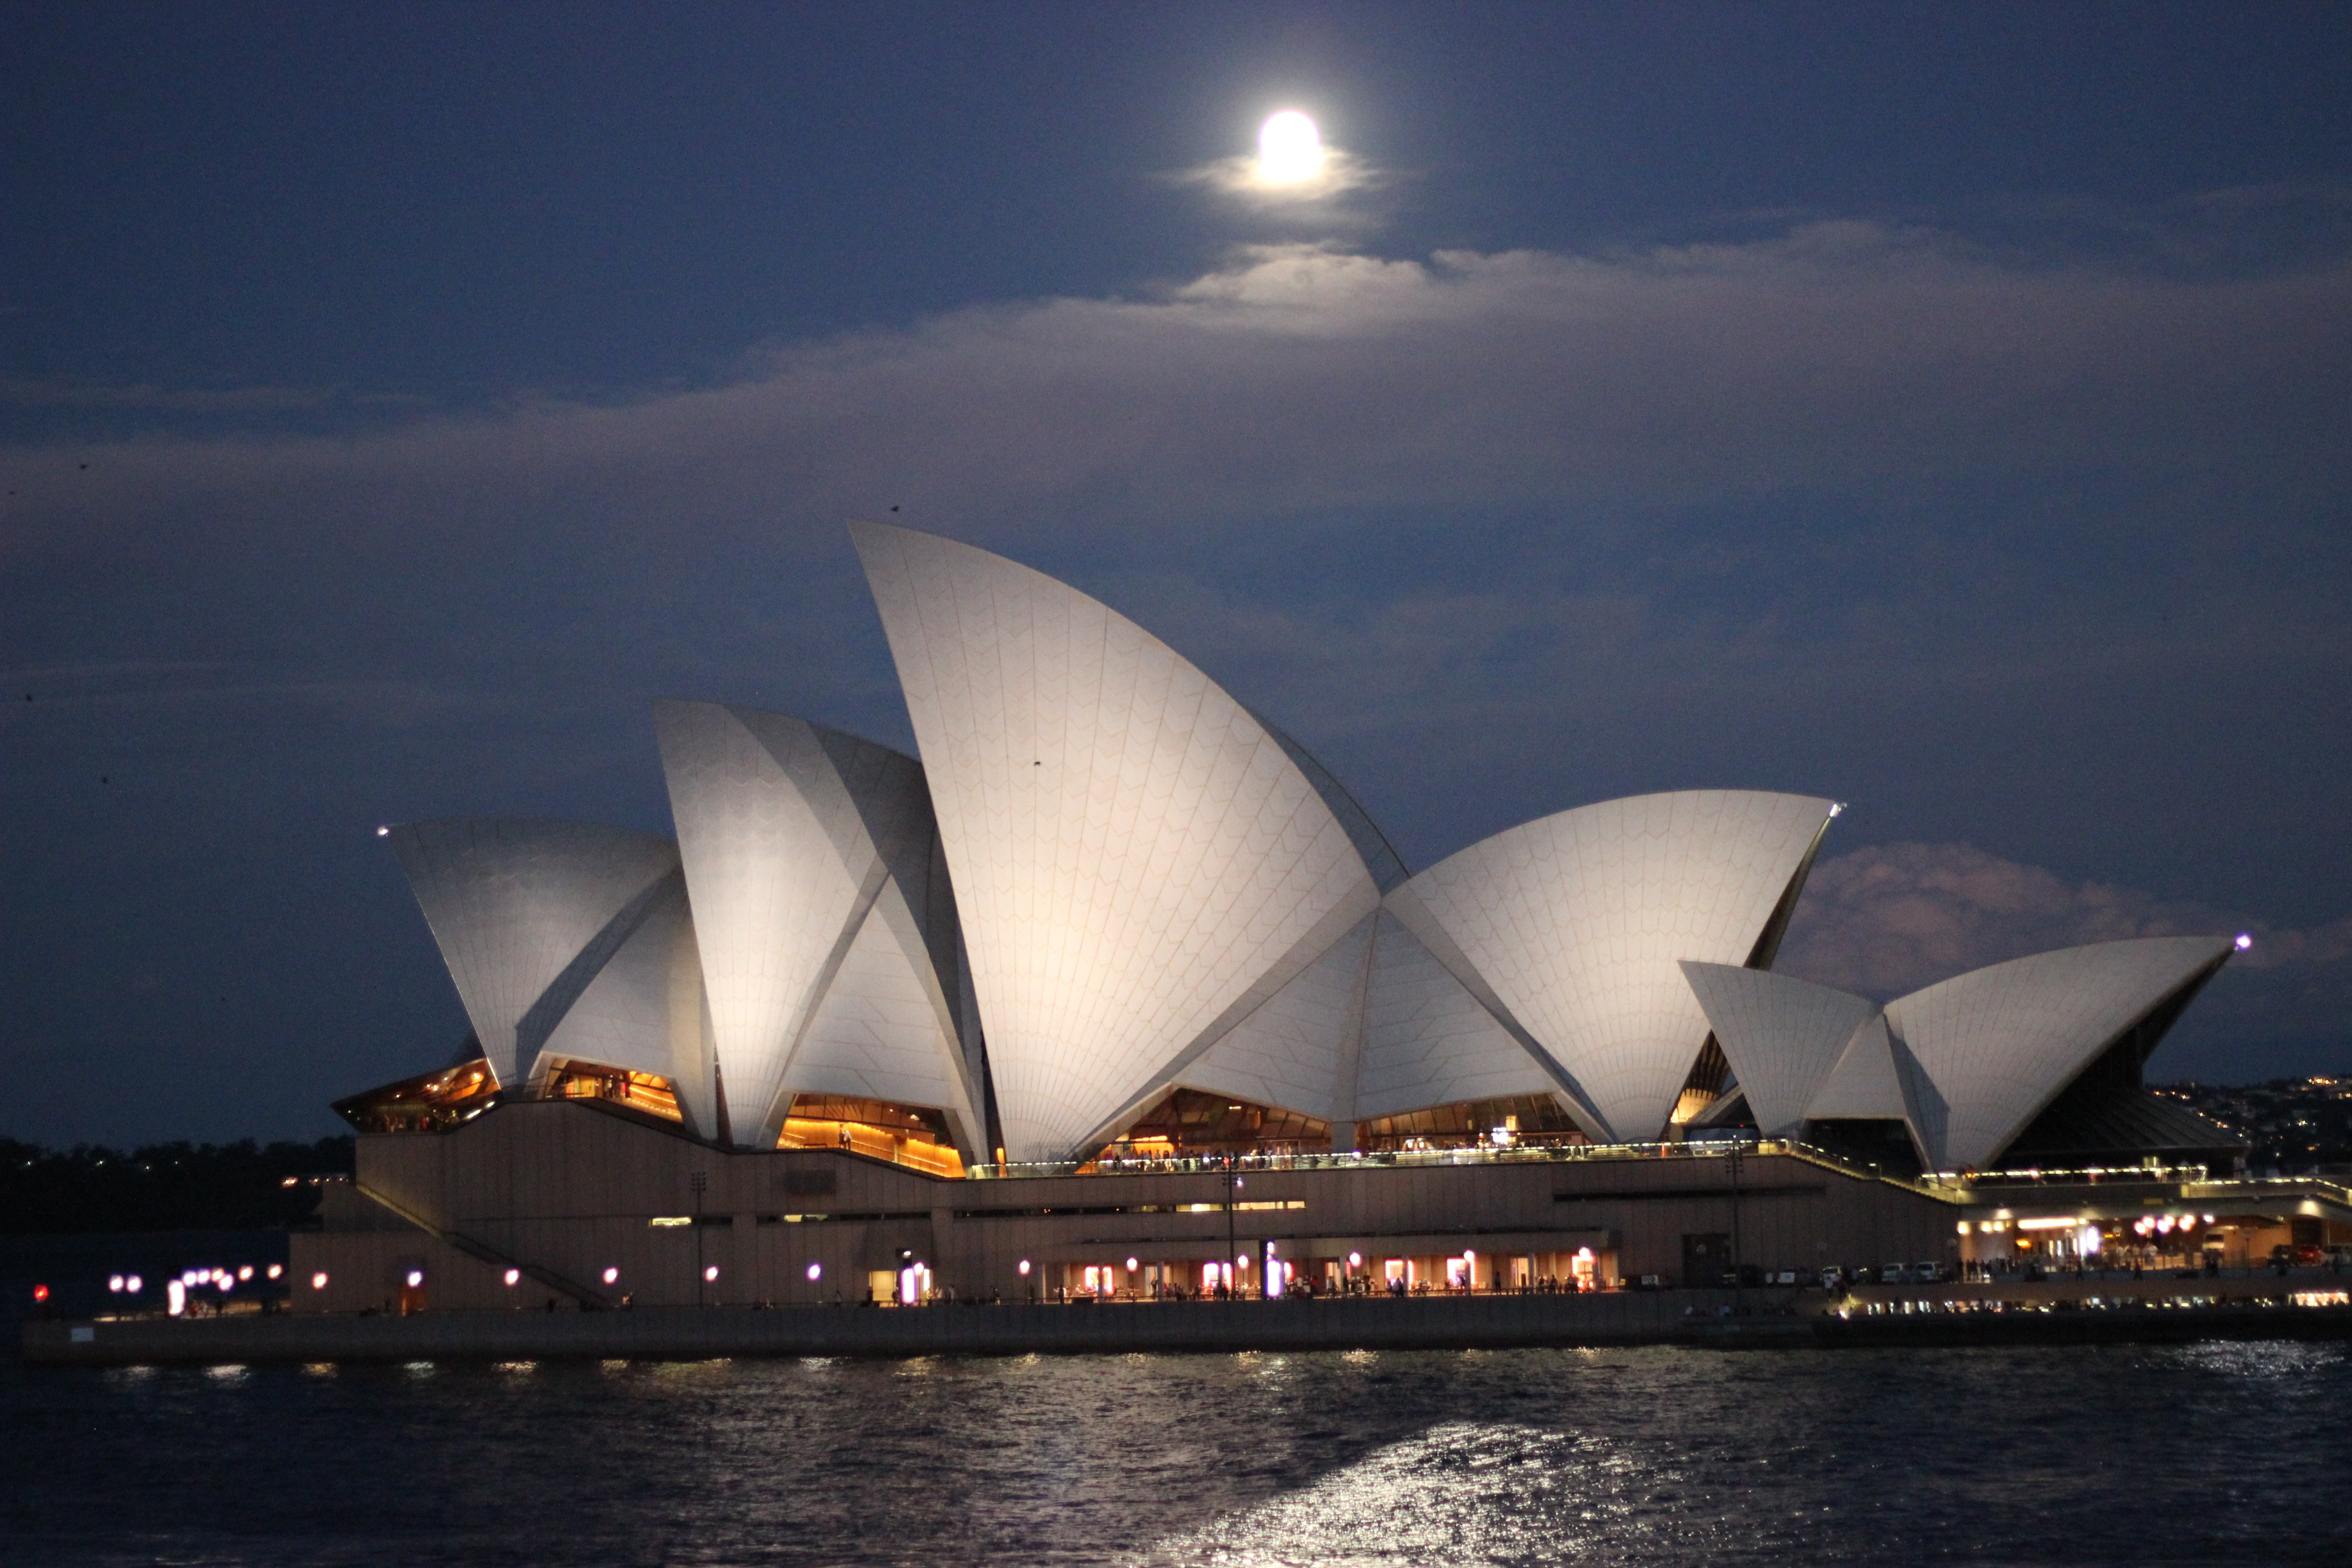 The Opera House in Sydney, photo taken from Quay restaurant